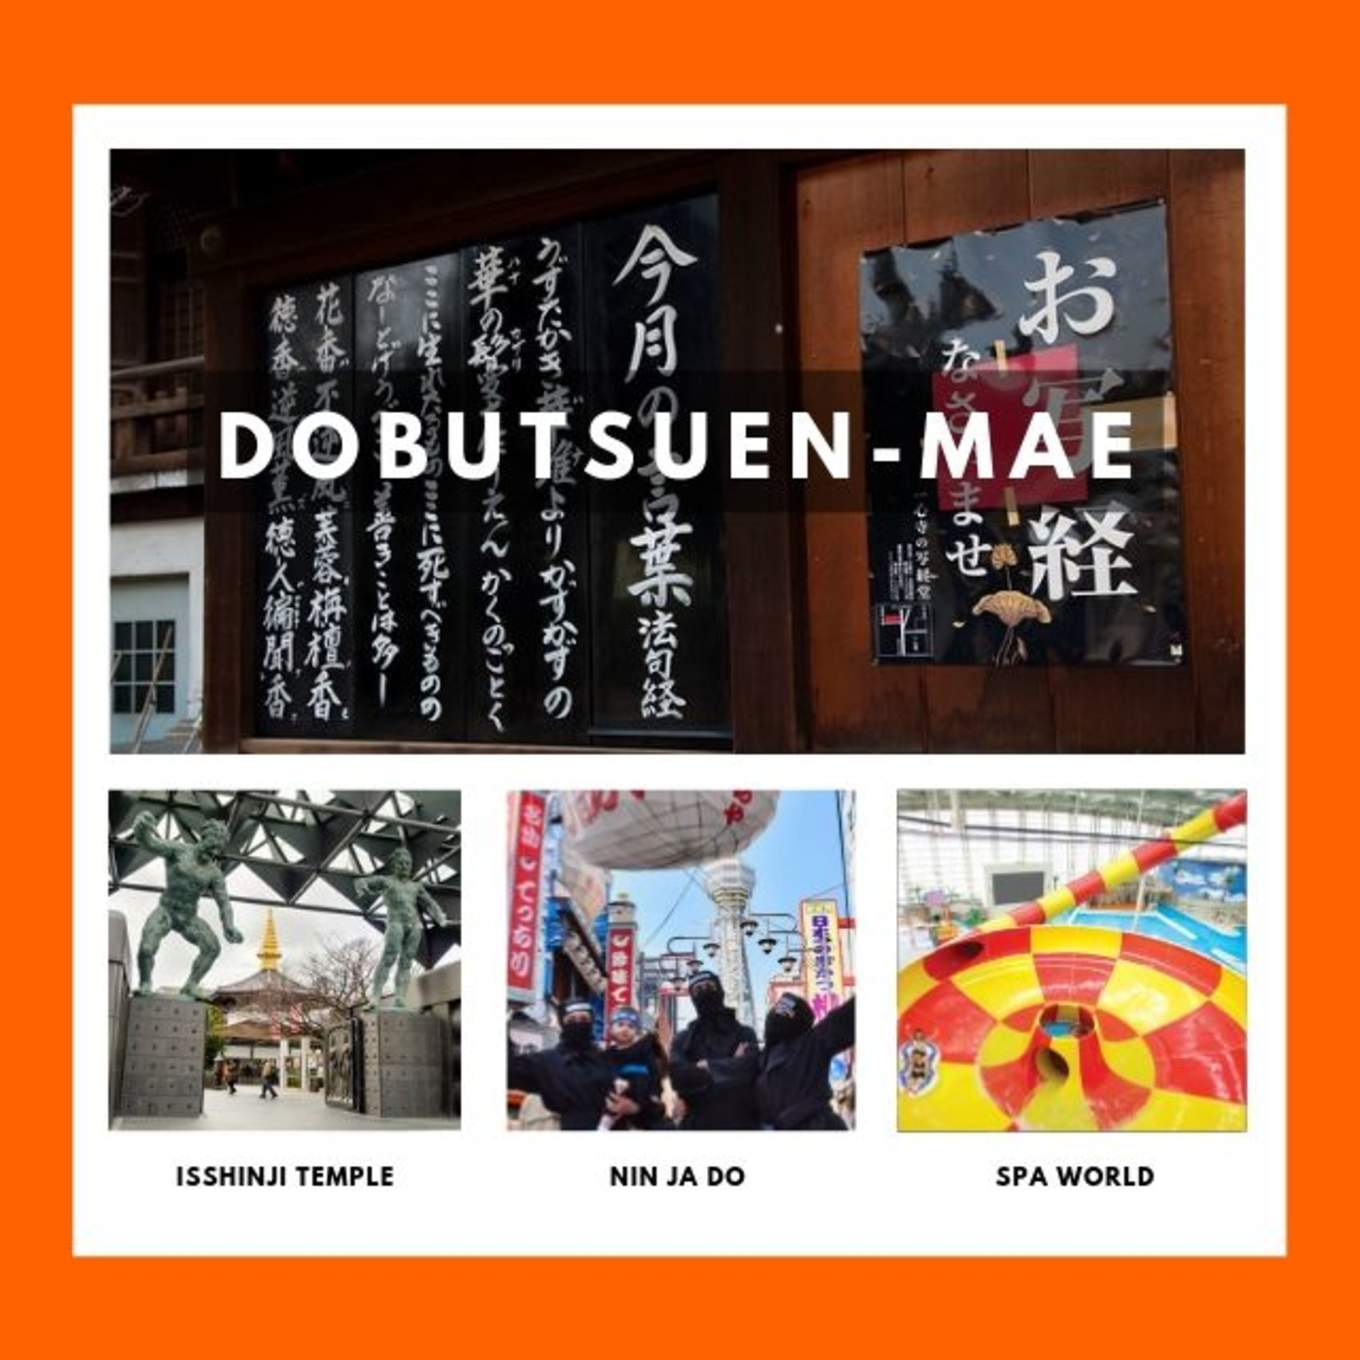 osaka-subway-guide-collage-dobutsuen-mae